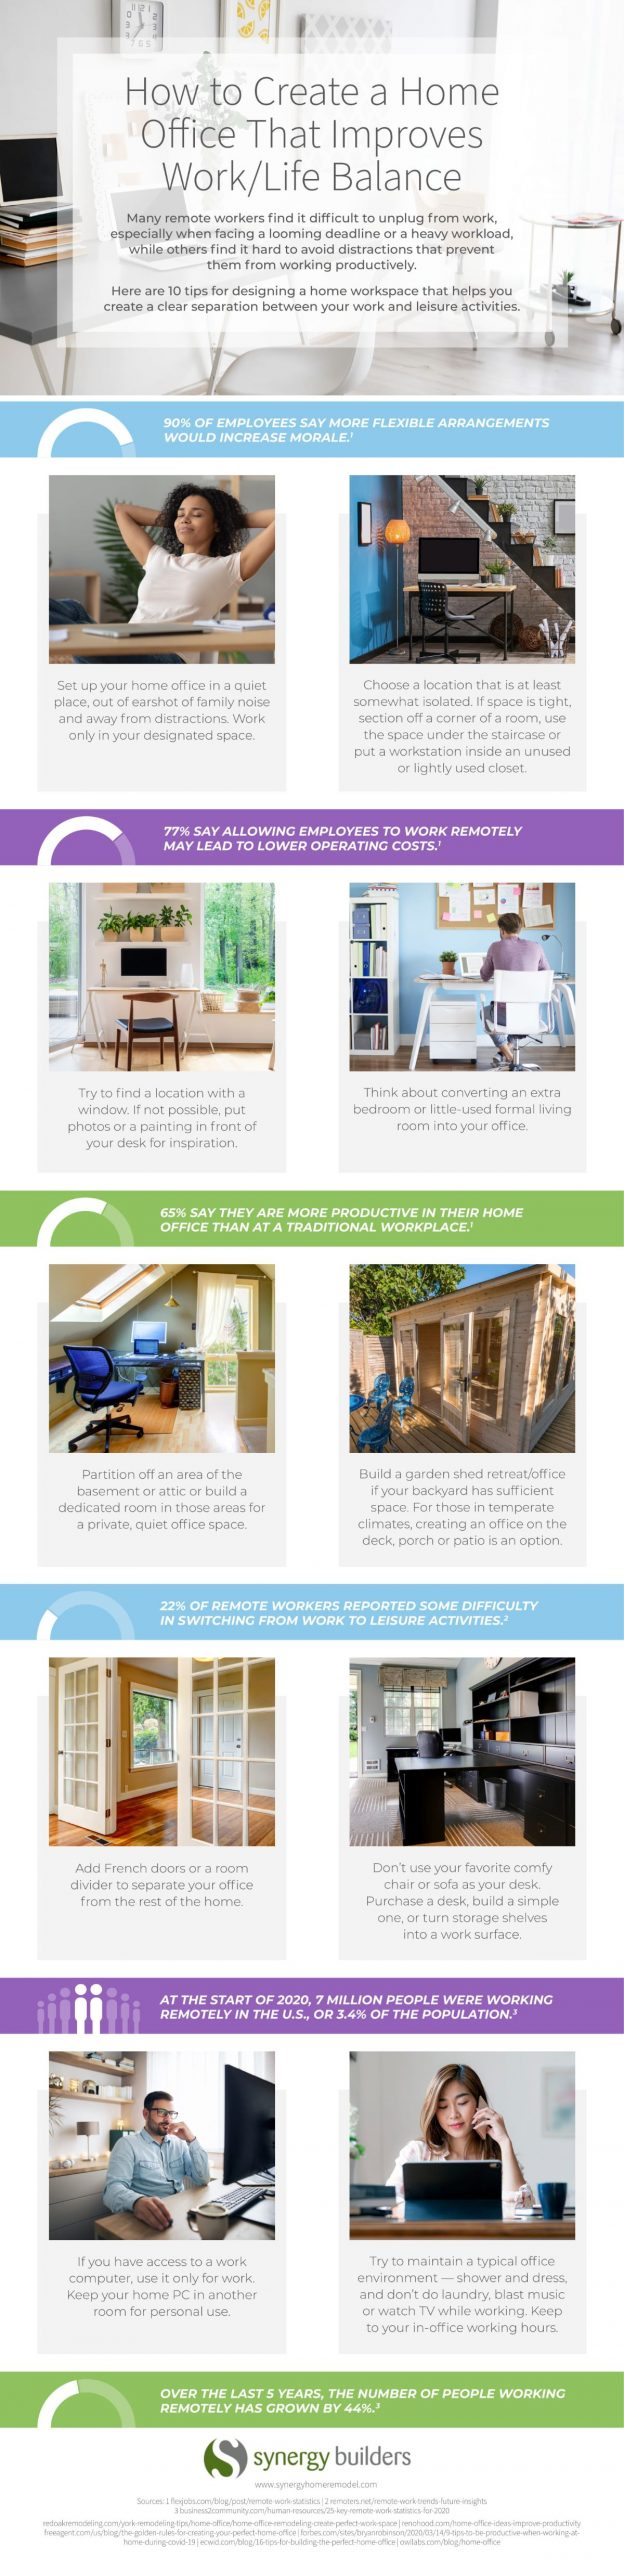 Home Office Help Obtaining Healthy Work Life Balance infographic 2